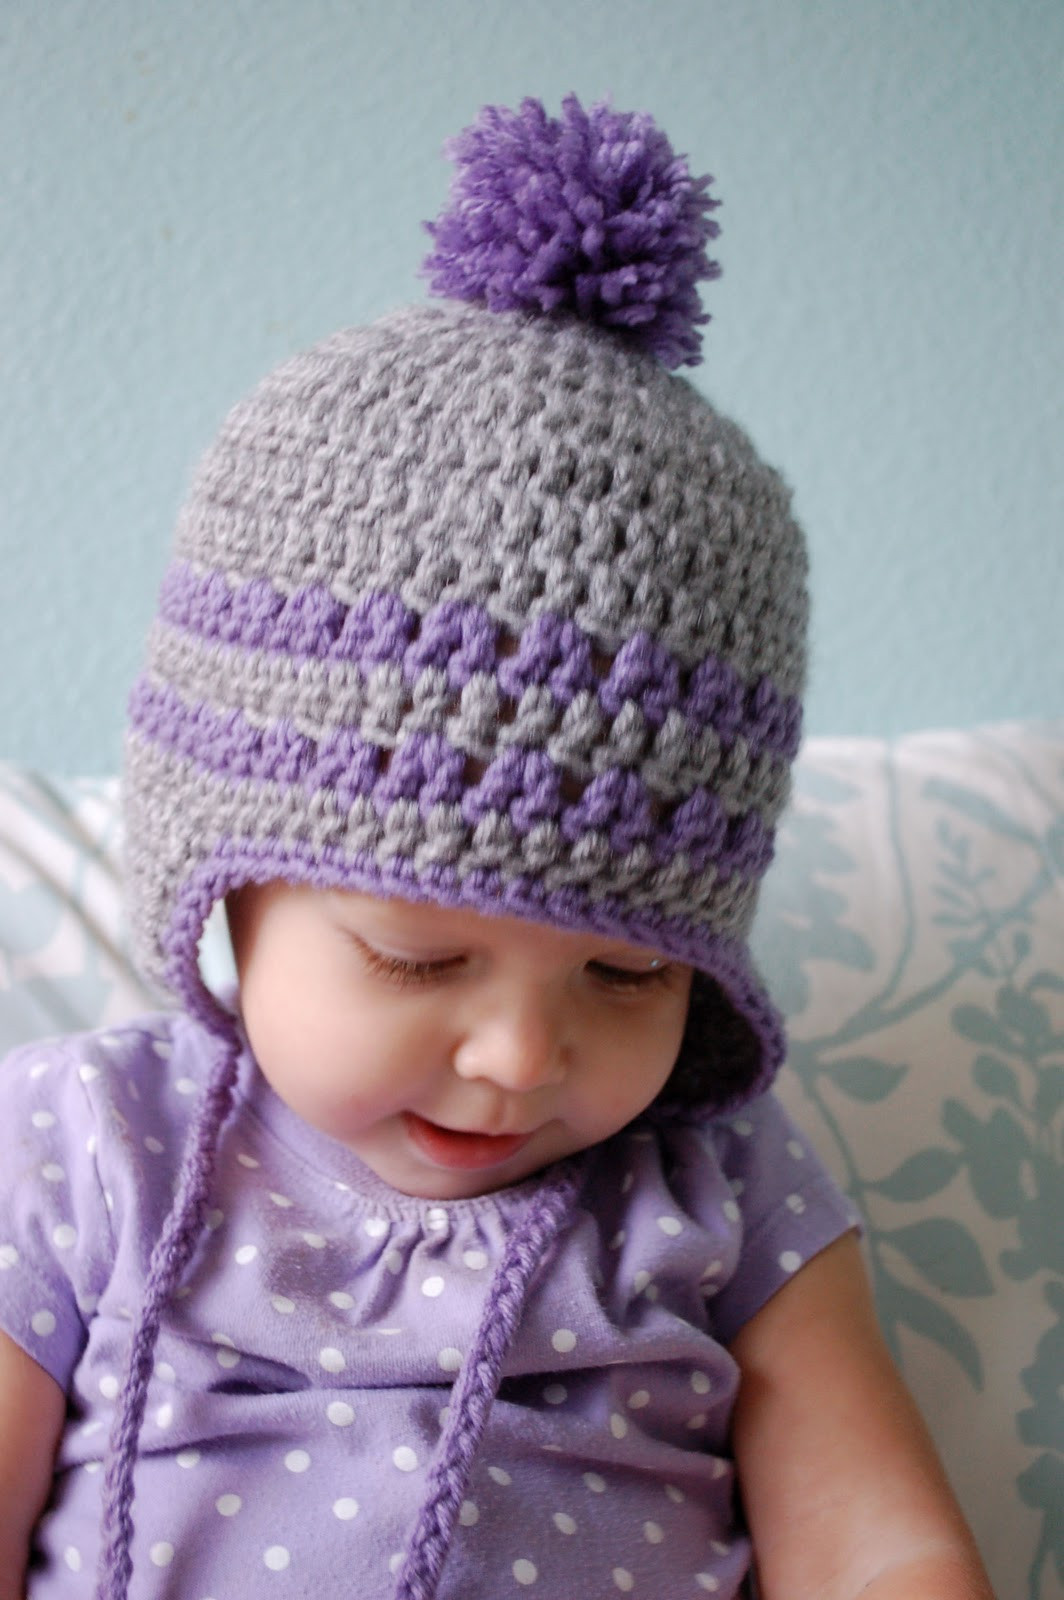 Fresh Free Crochet Patterns for Baby Hats with Ear Flaps Free Crochet Patterns for toddlers Of Brilliant 47 Photos Free Crochet Patterns for toddlers